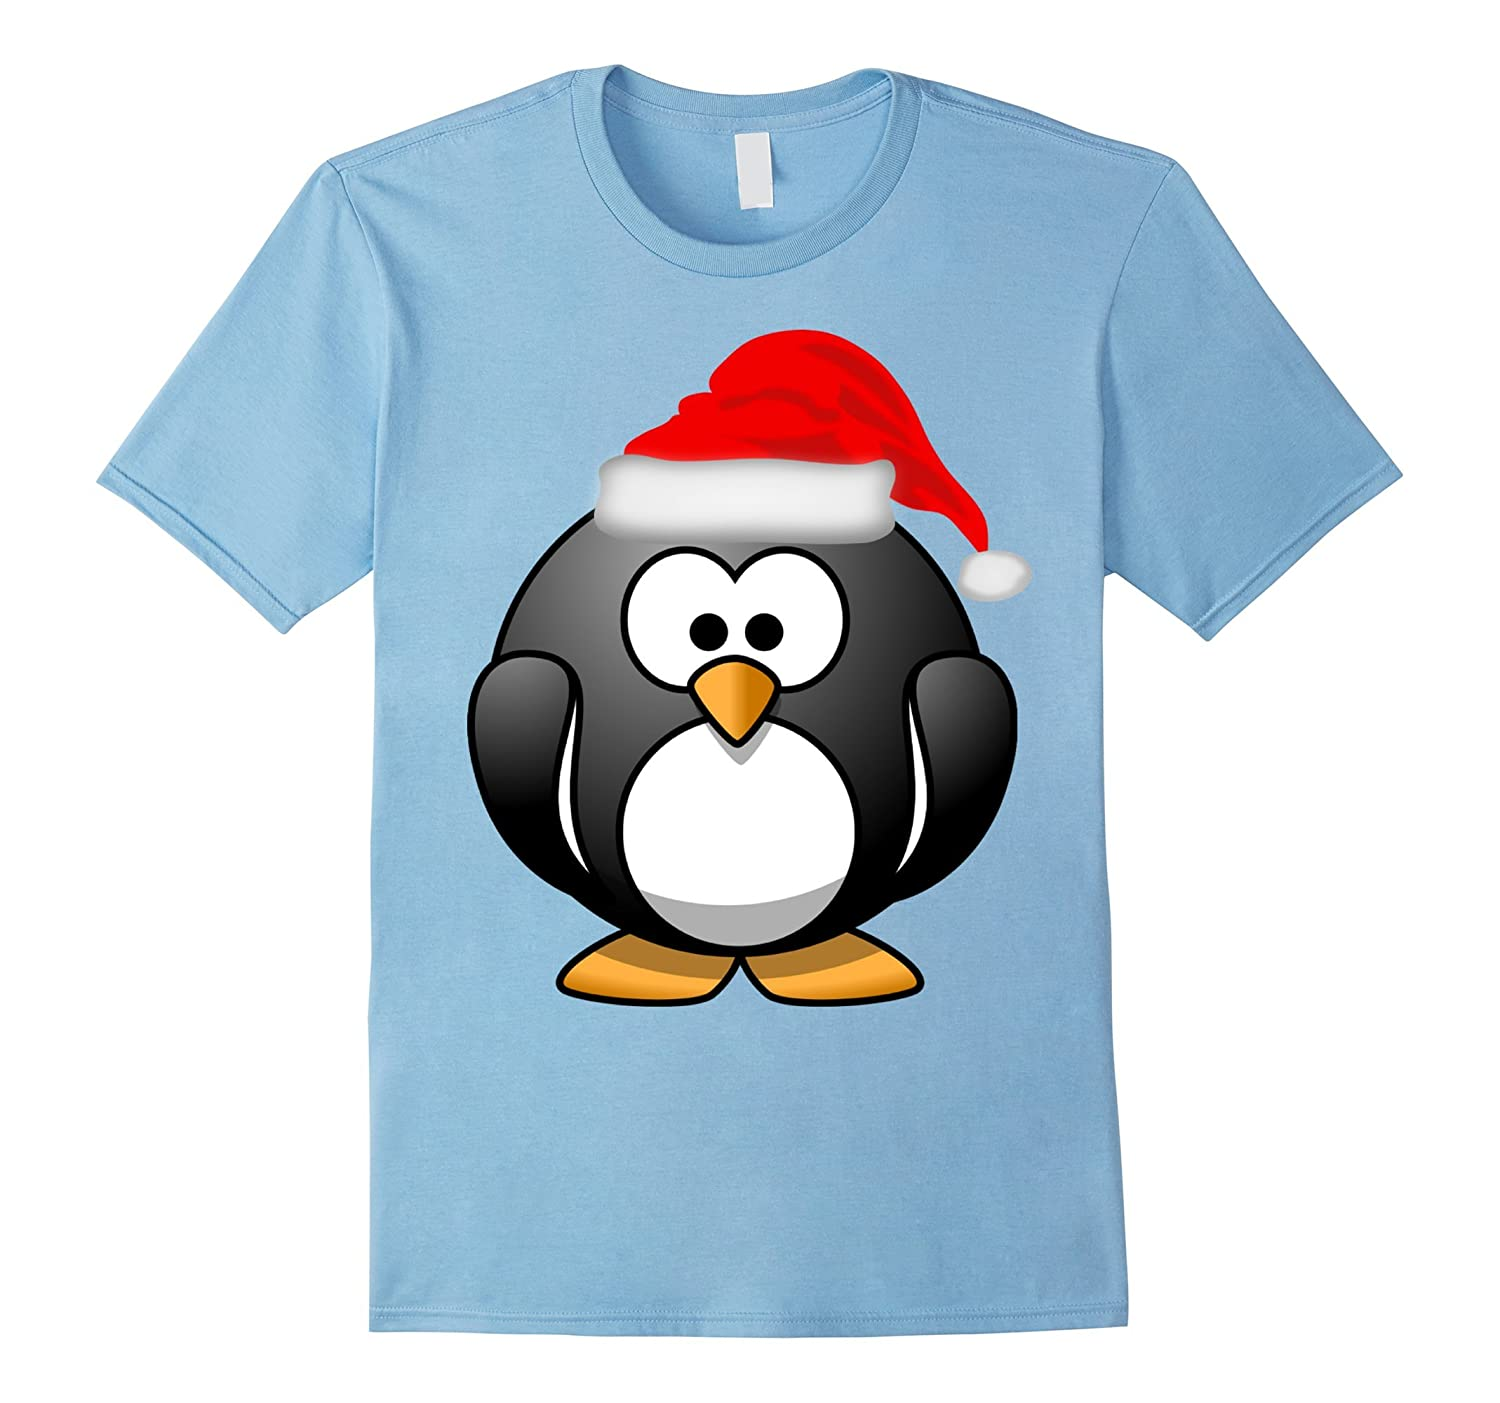 the christmas penguin t shirt goatstee. Black Bedroom Furniture Sets. Home Design Ideas